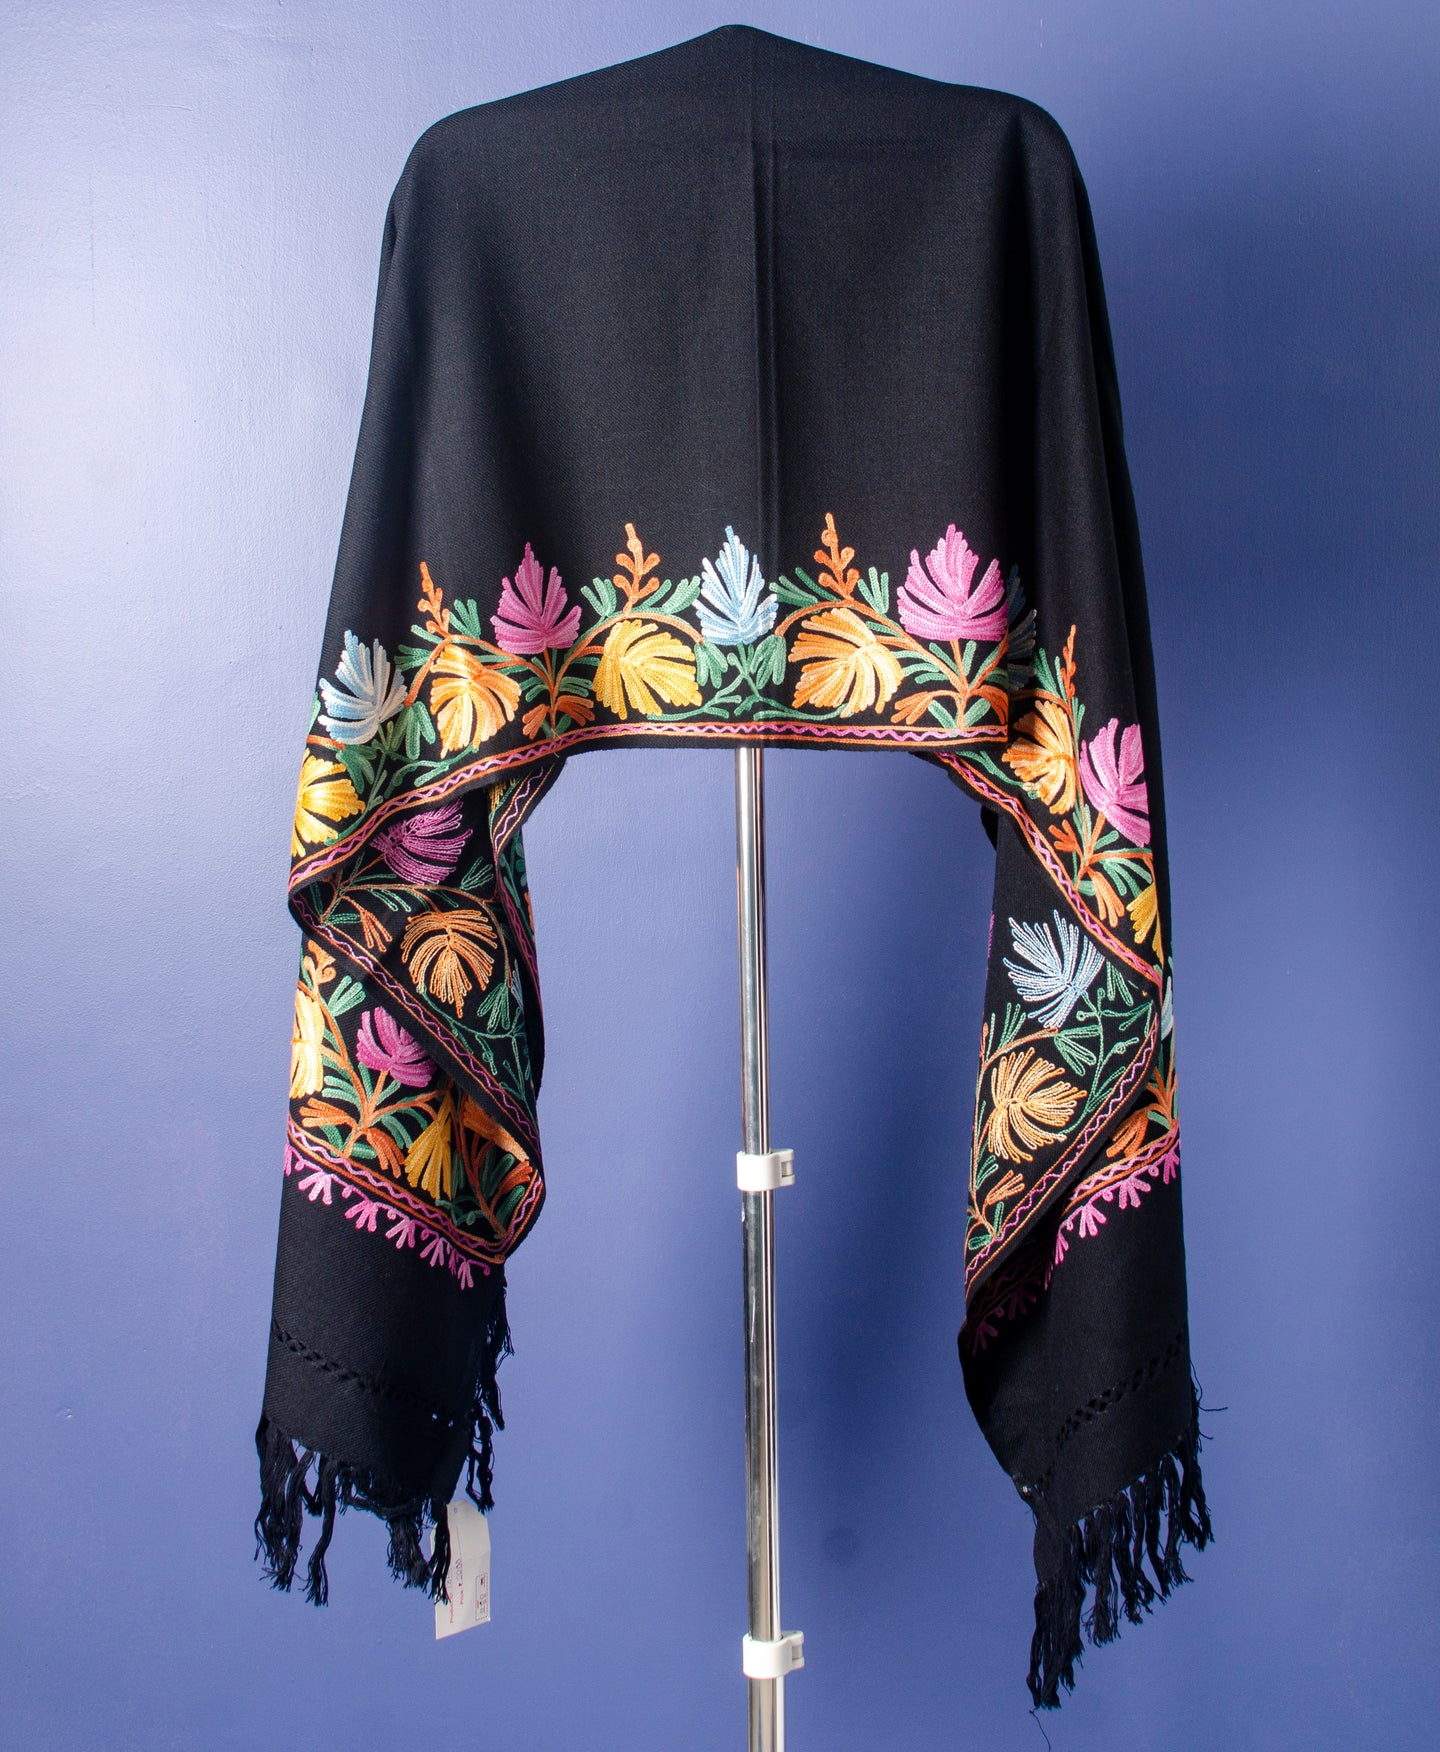 MULTI THREAD EMBROIDERED ON BLACK KASHMIRI WOOLLEN STOLE